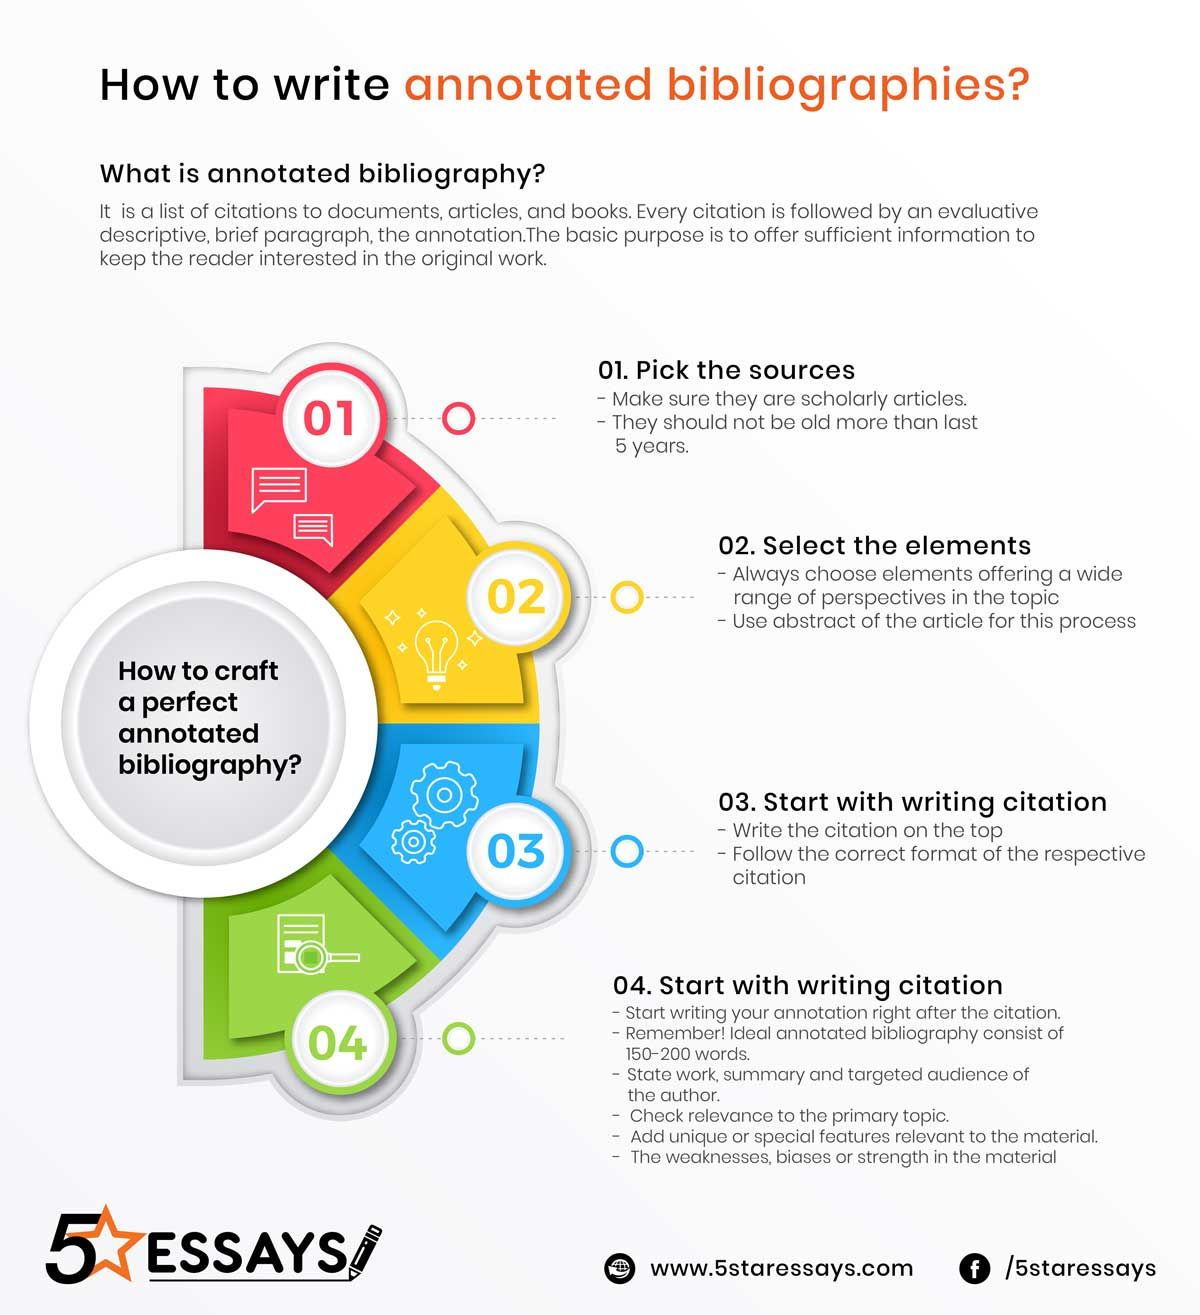 Annotated Bibliography Infographic Essay Writing Creative Ideas How To Cite Journal Article Chicago Footnotes